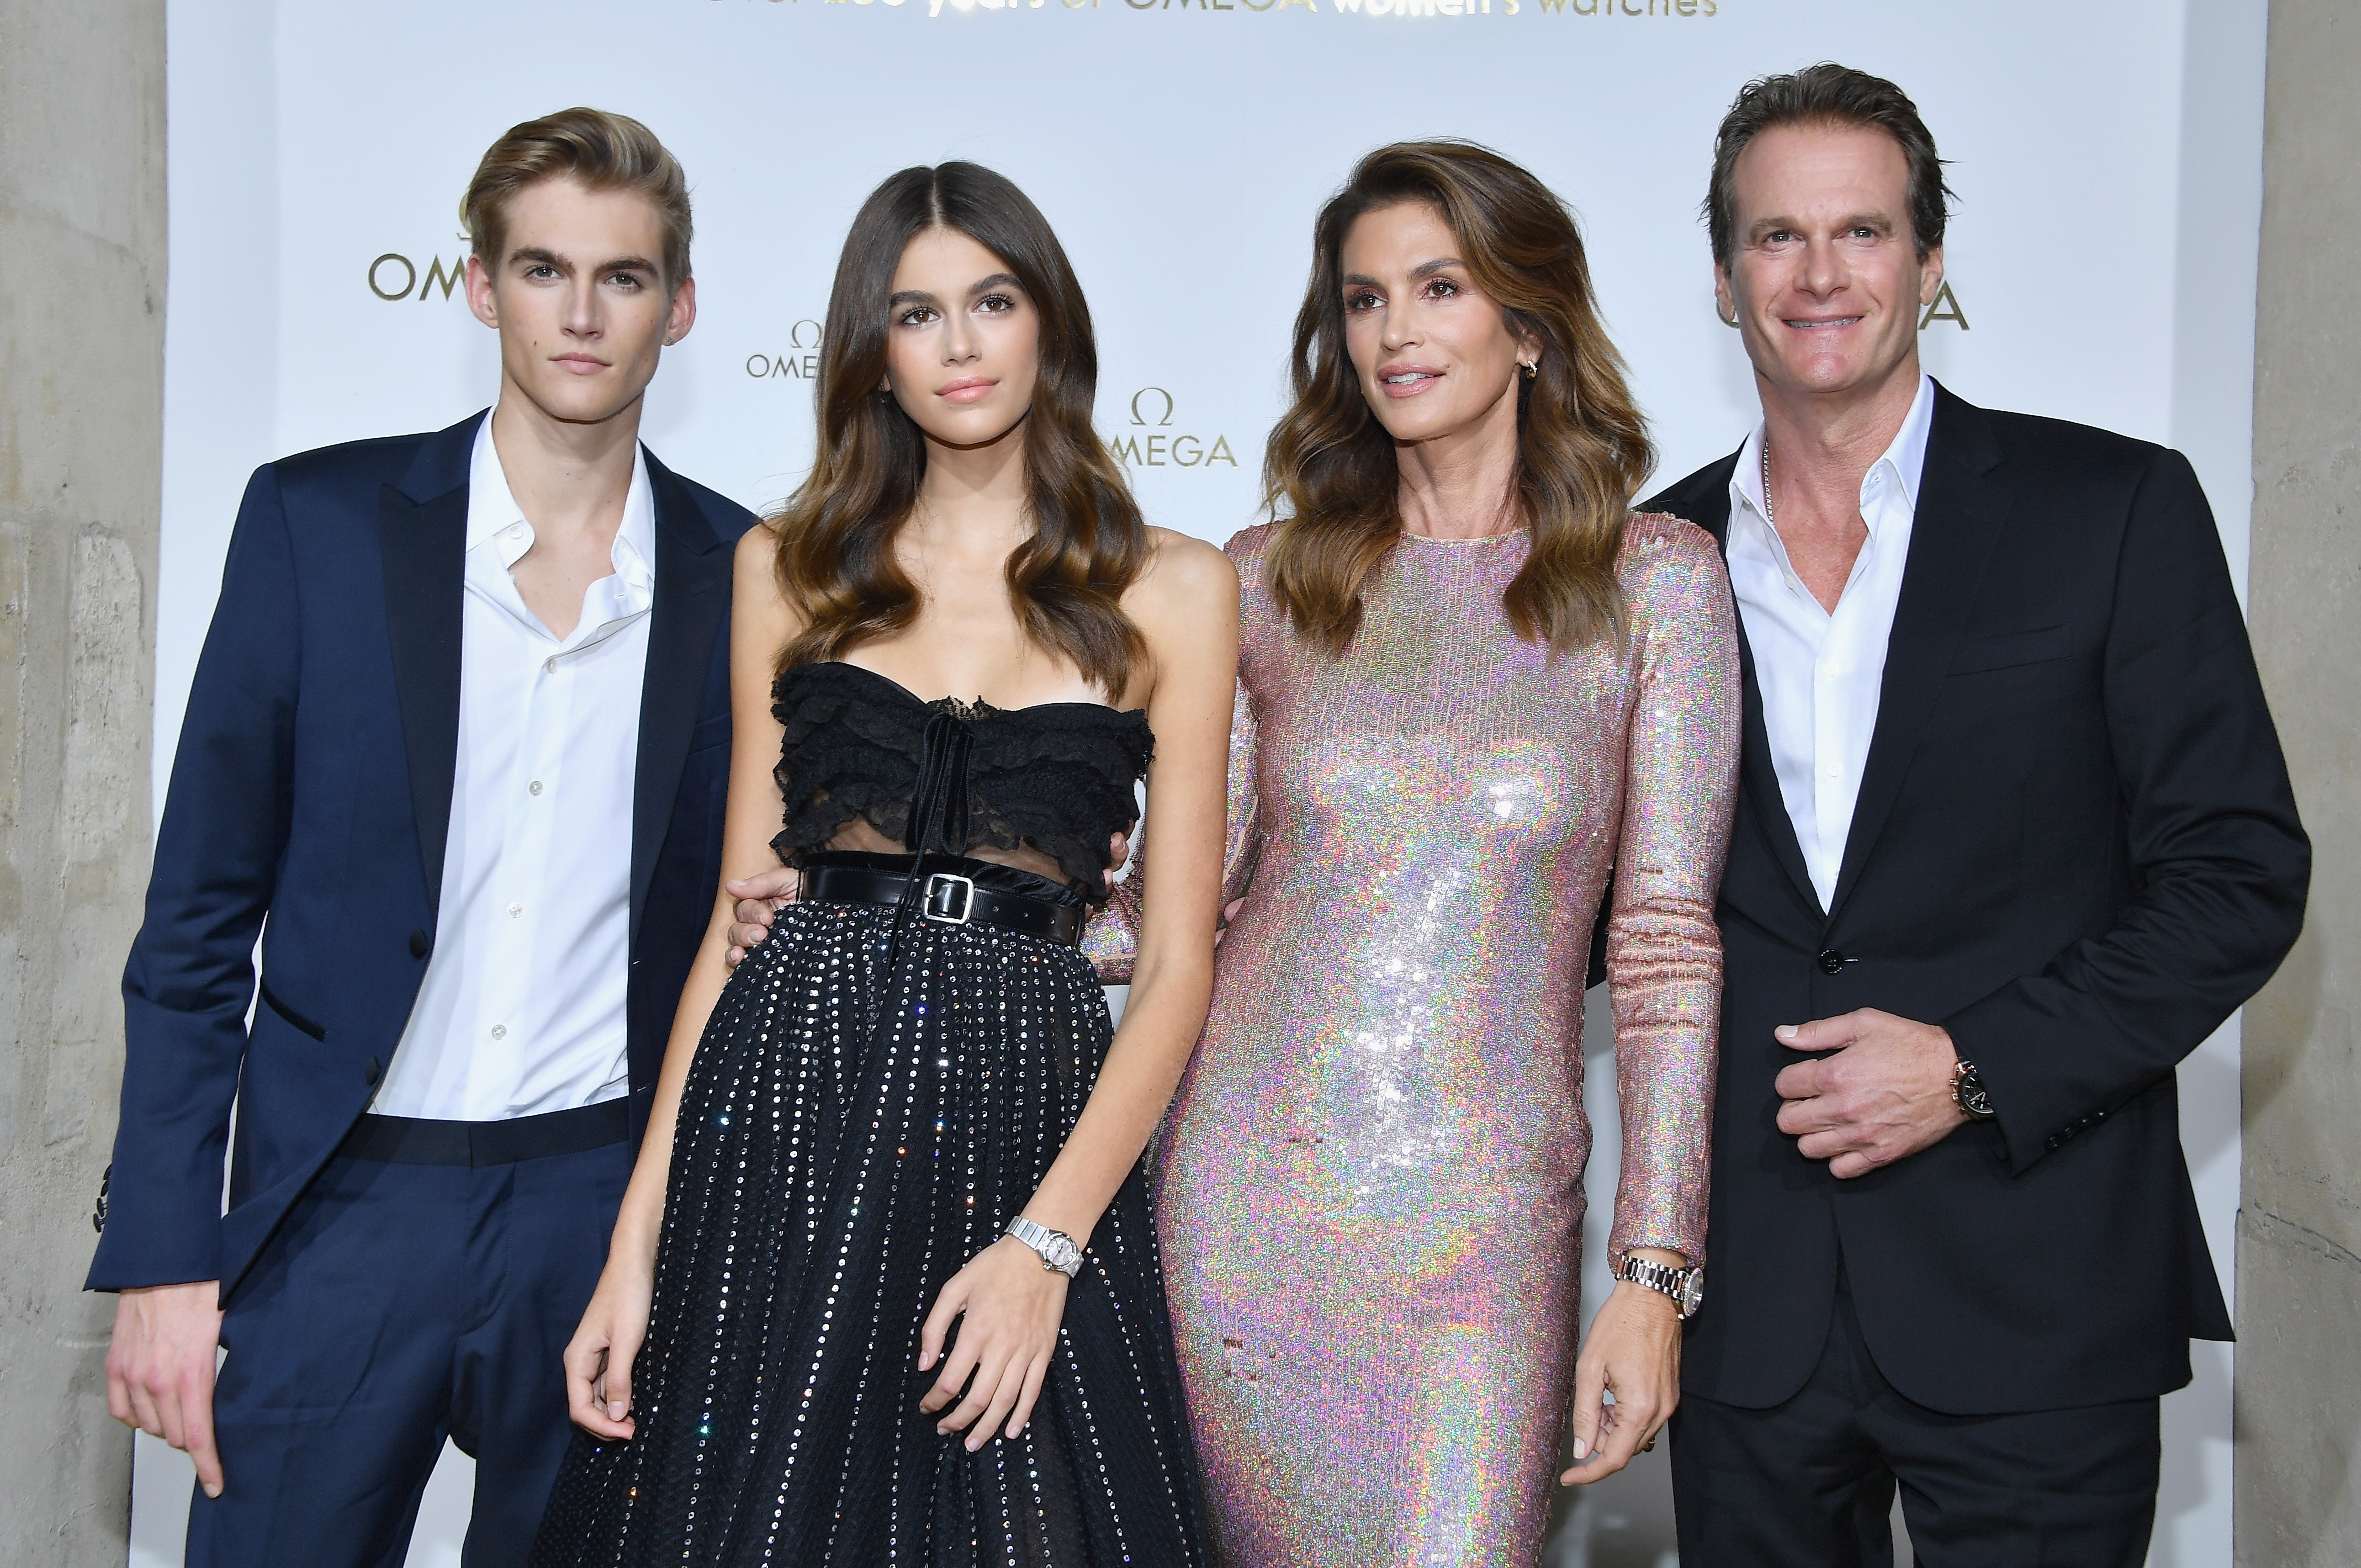 """Presley Gerber,Kaia Gerber,Cindy Crawford and Rande Gerber attend """"Her Time"""" Omega Photocall on September 29, 2017, in Paris, France. 